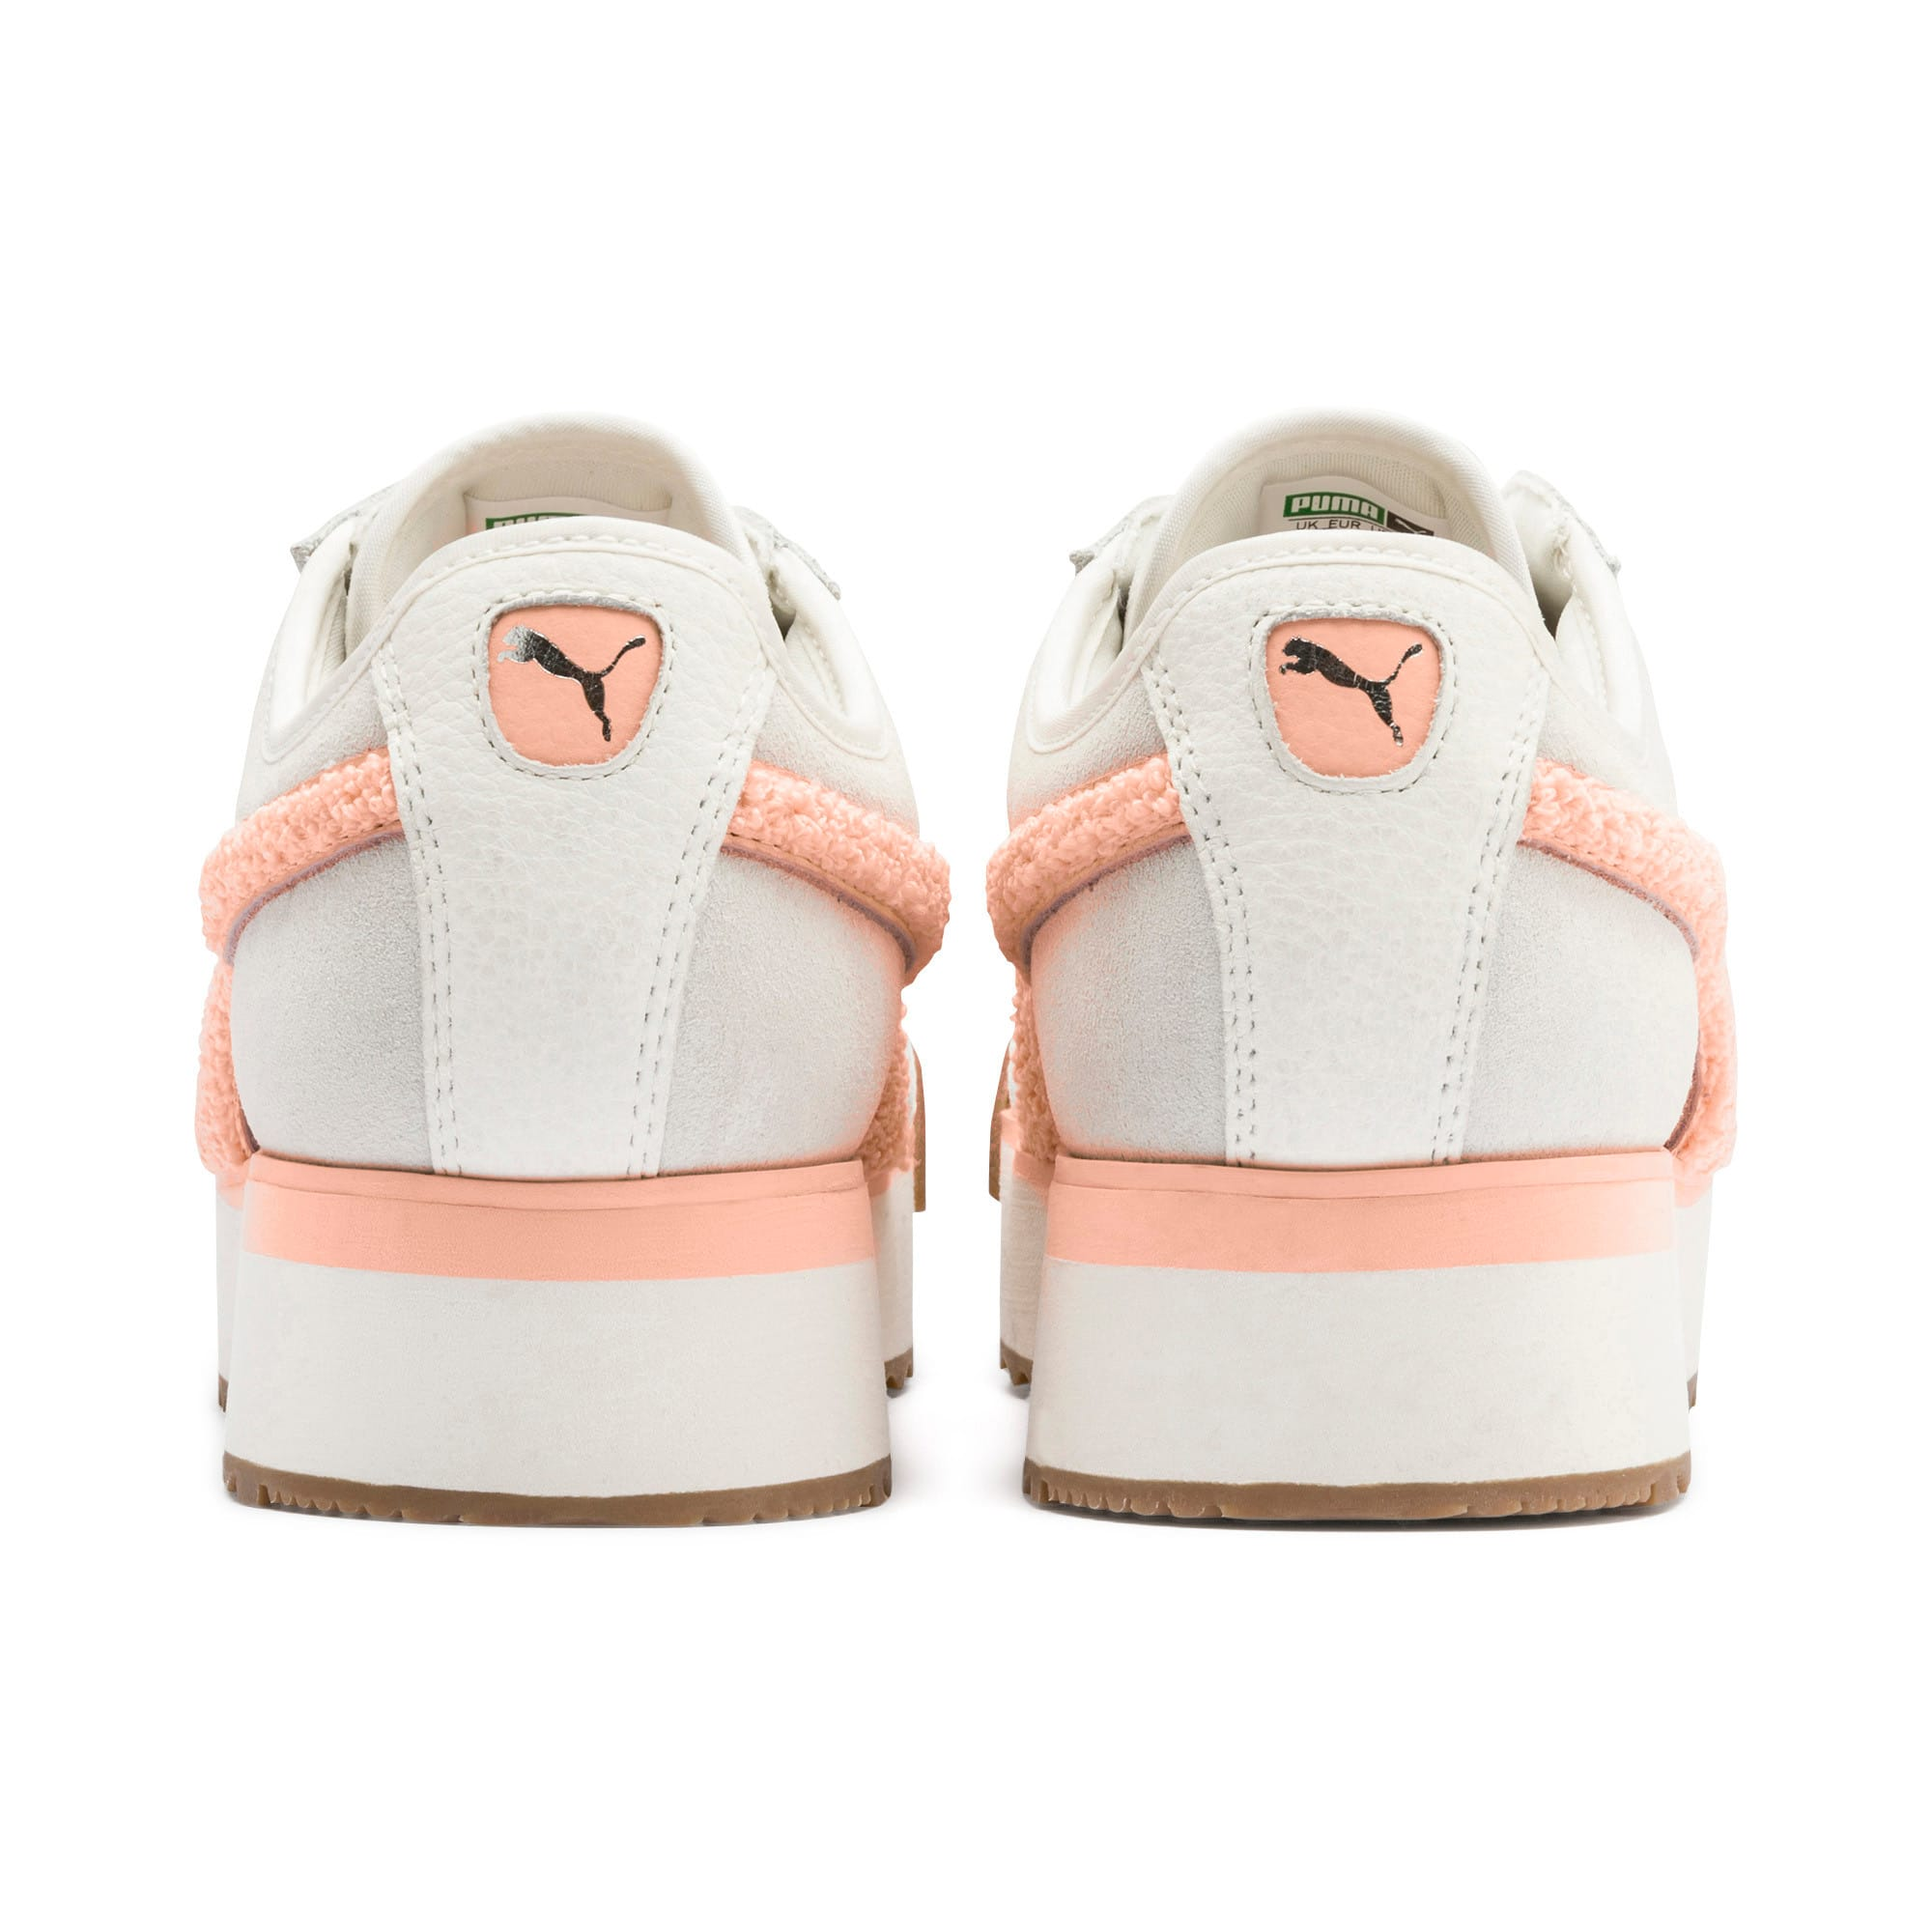 Thumbnail 4 of Roma Amor Heritage Women's Trainers, Marshmallow-Peach Parfait, medium